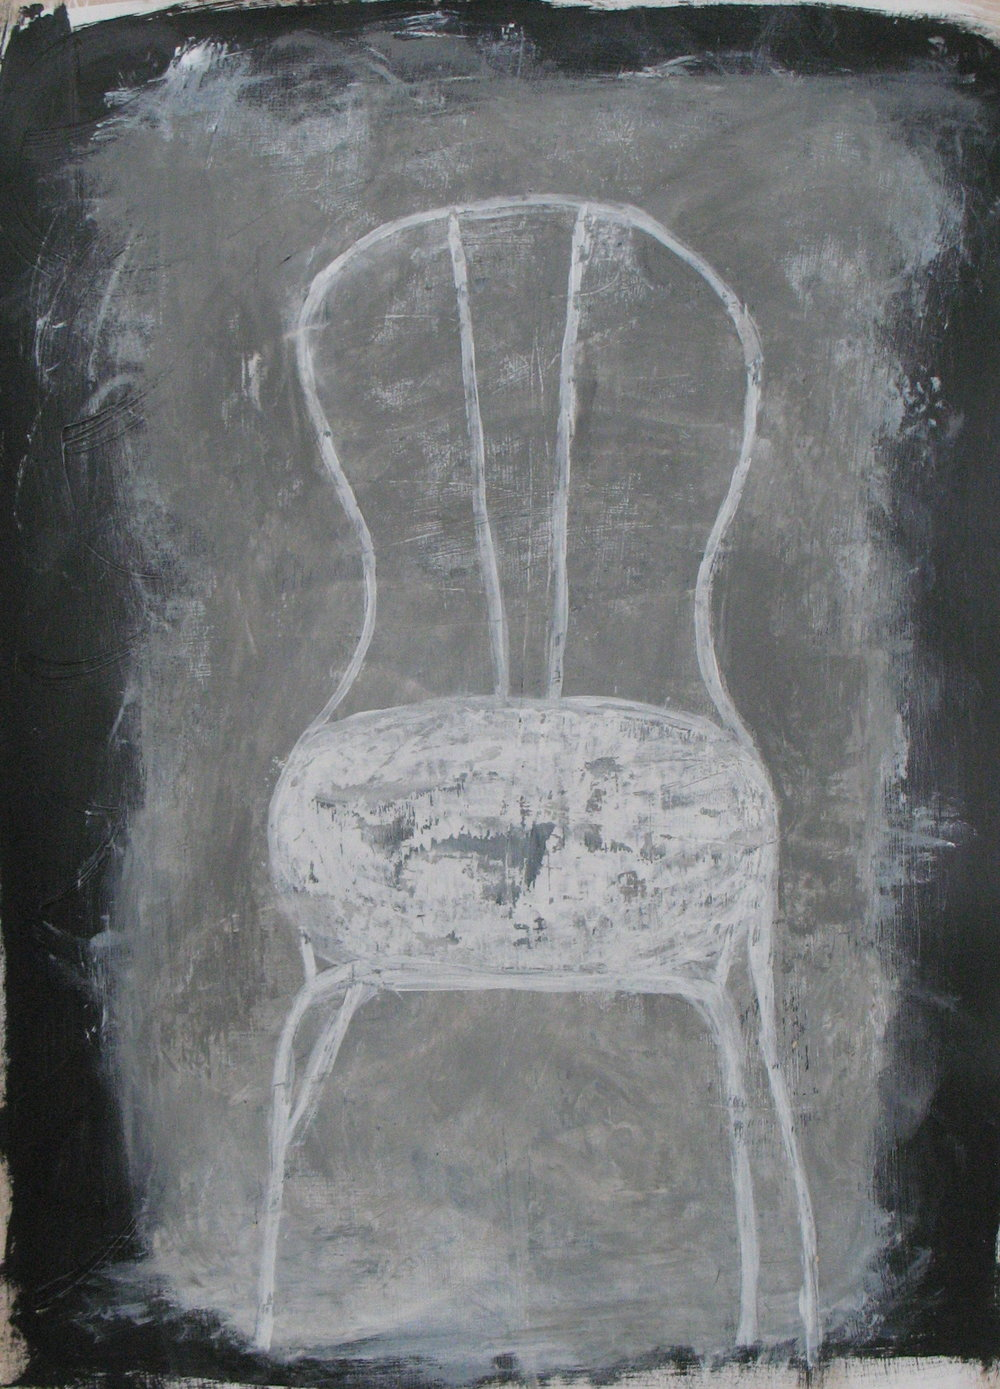 Ghost chair #3